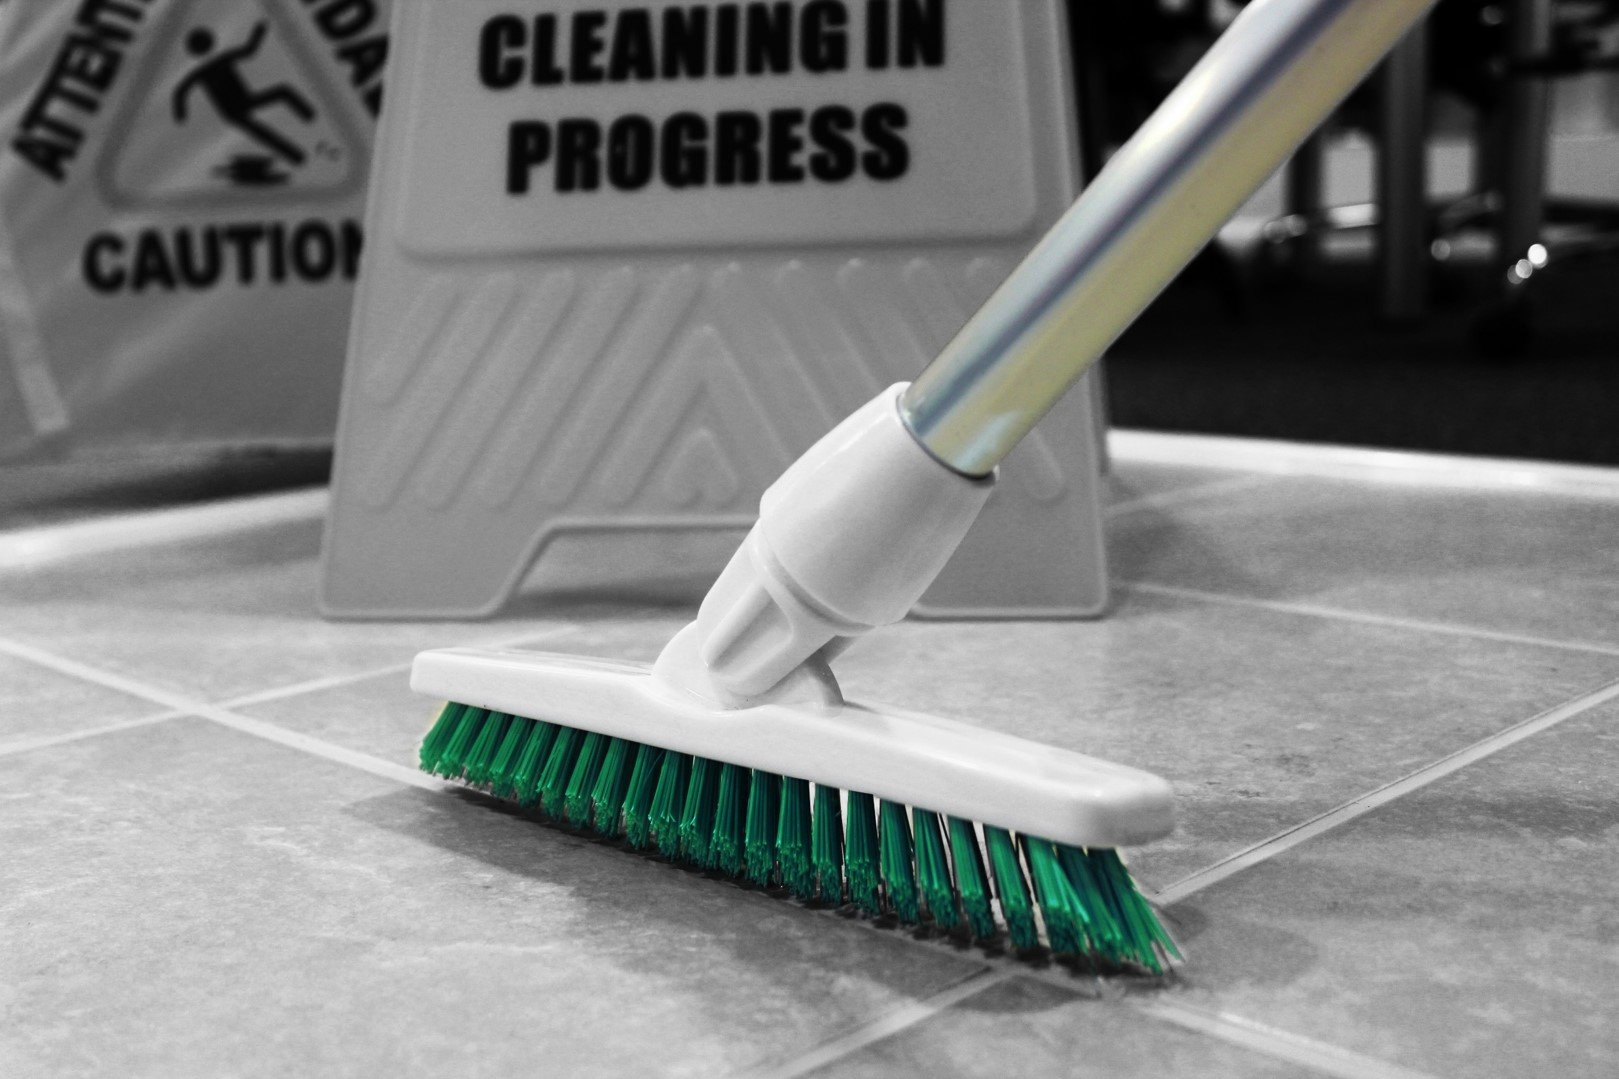 Green Colour Coded Food Hygiene Grout Cleaning Brush Long Handled Stiff Bristle Deck Floor Tile Scrubbing Angled Bristle Scrub Broom Brush by Grout Brush